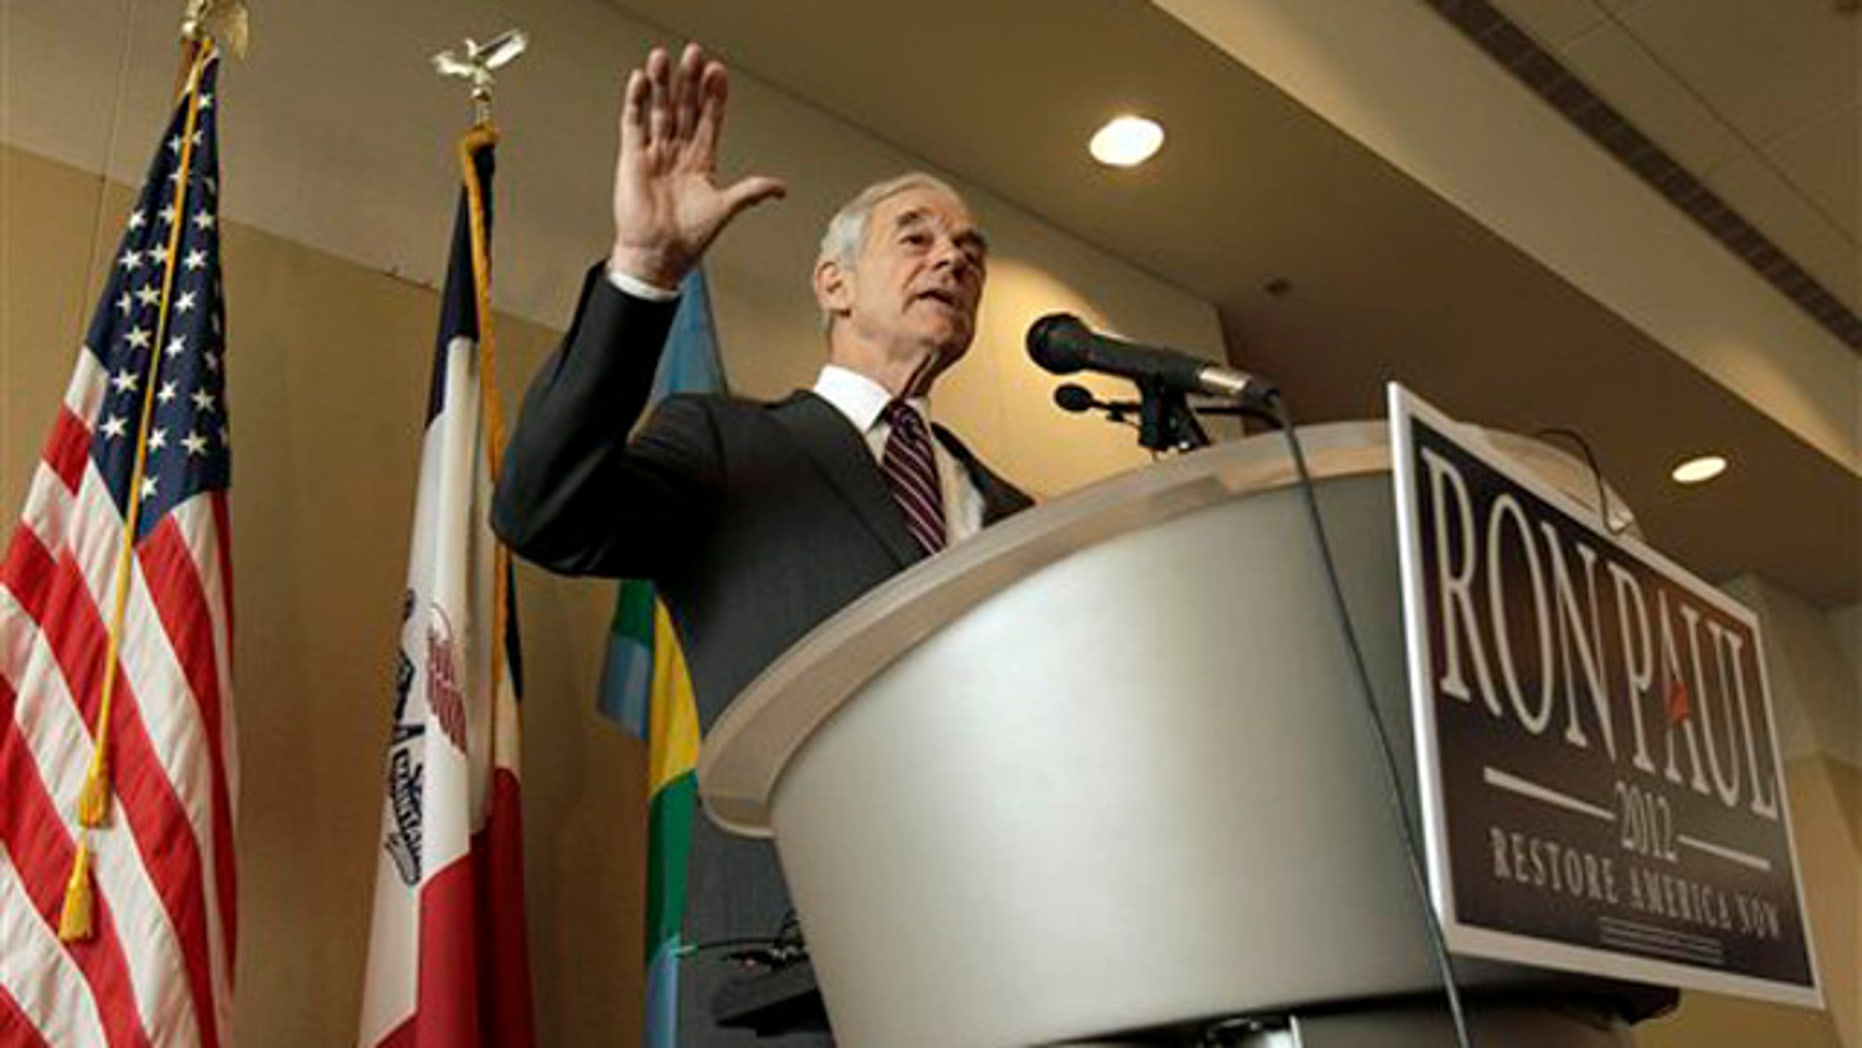 Dec. 22, 2011: Republican presidential candidate Ron Paul speaks during a campaign stop in Dubuque, Iowa.